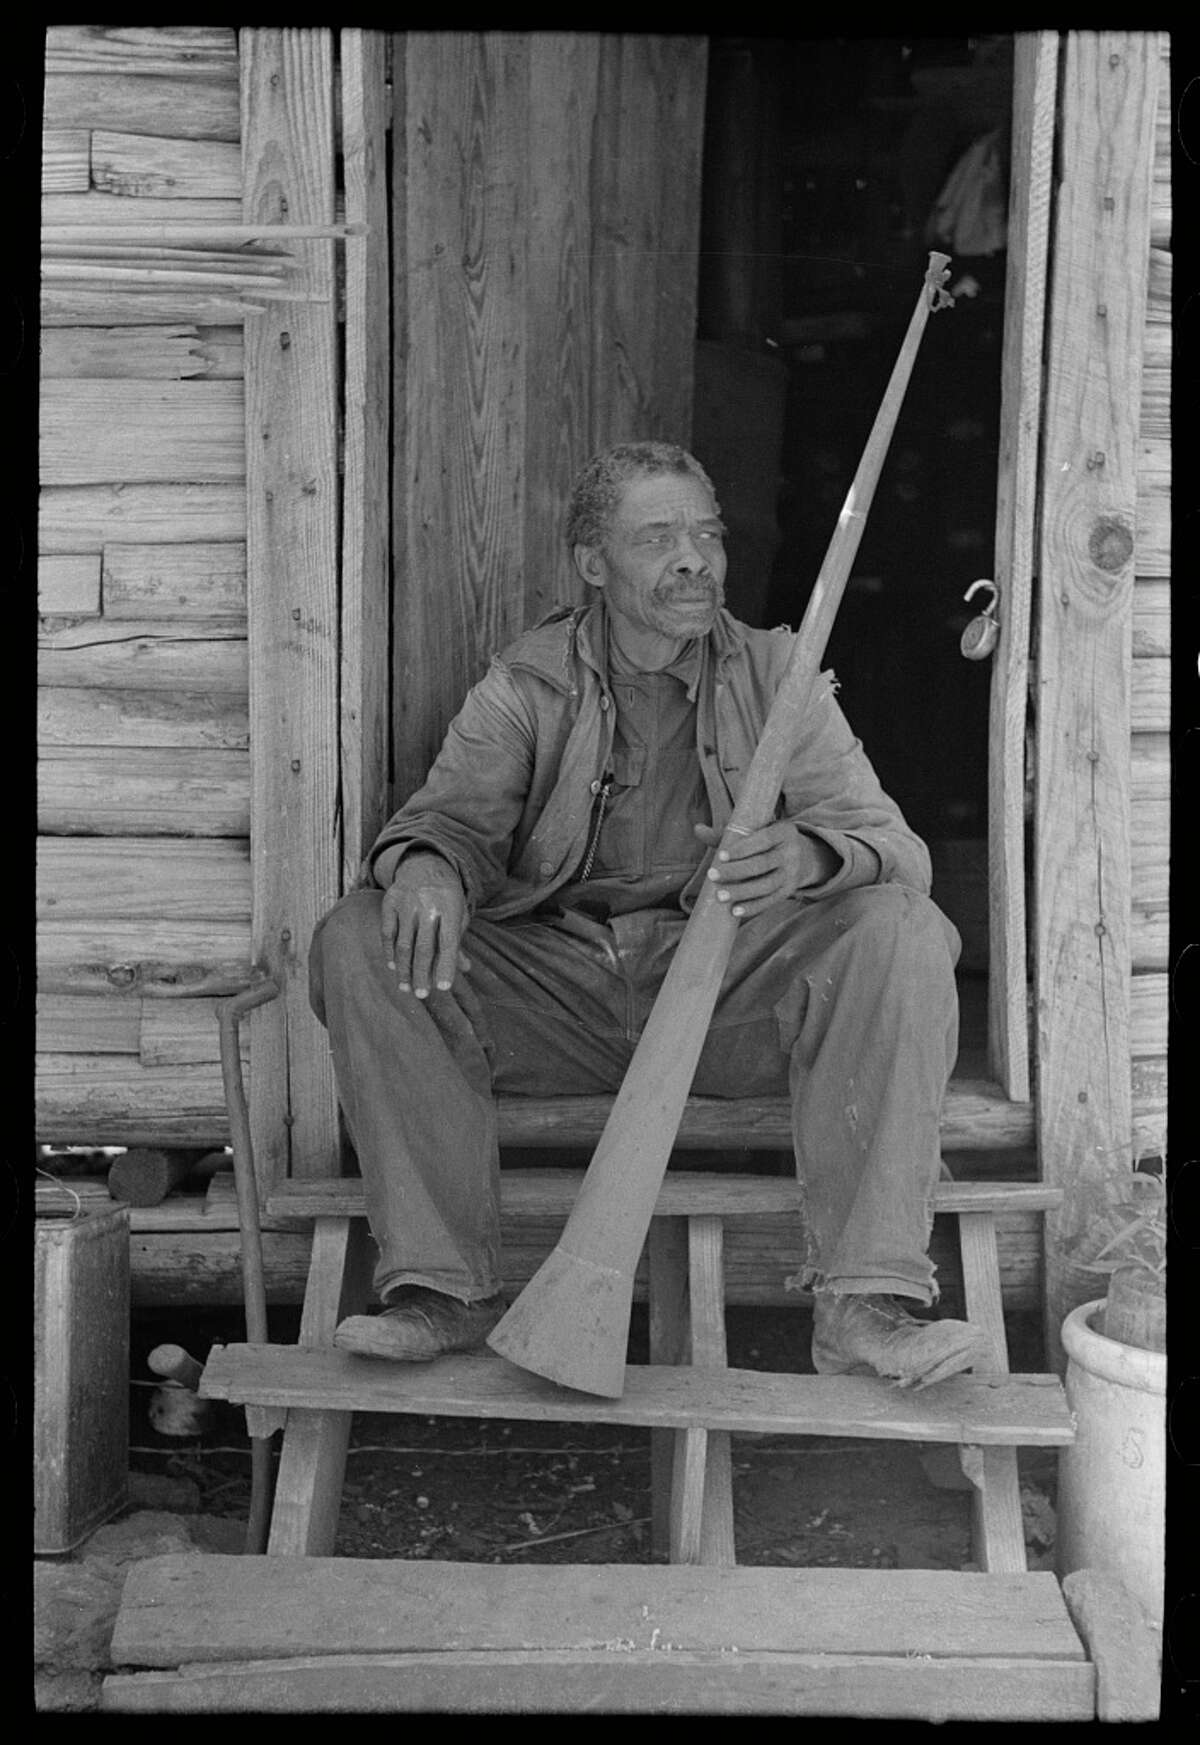 """Former slaves were still alive Original description: """"Old Negro (former slave) with horn with which slaves were called."""" Date: April 1939."""